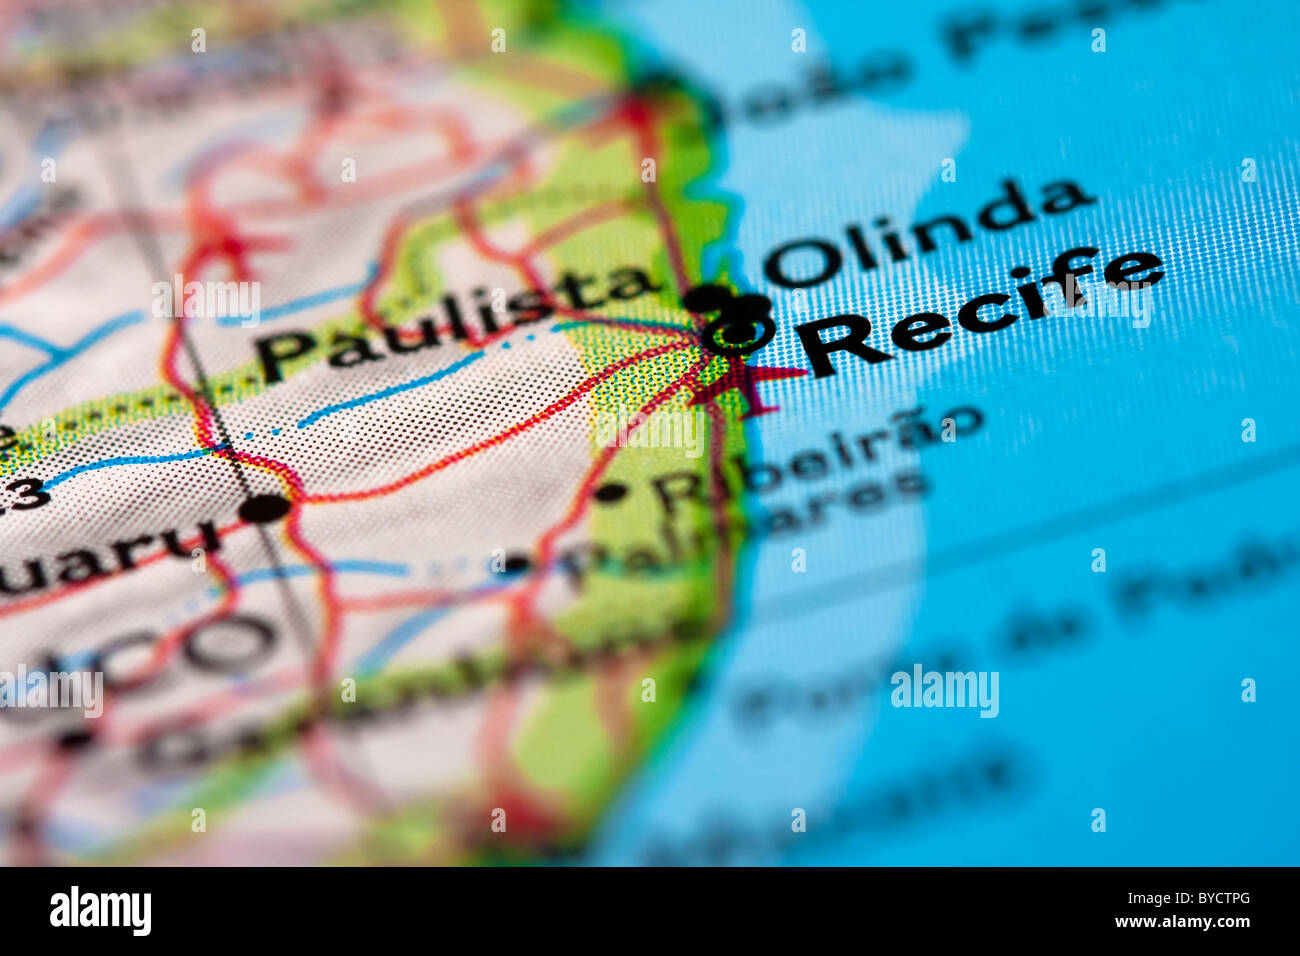 Recife in Brazil on the map. - Stock Image